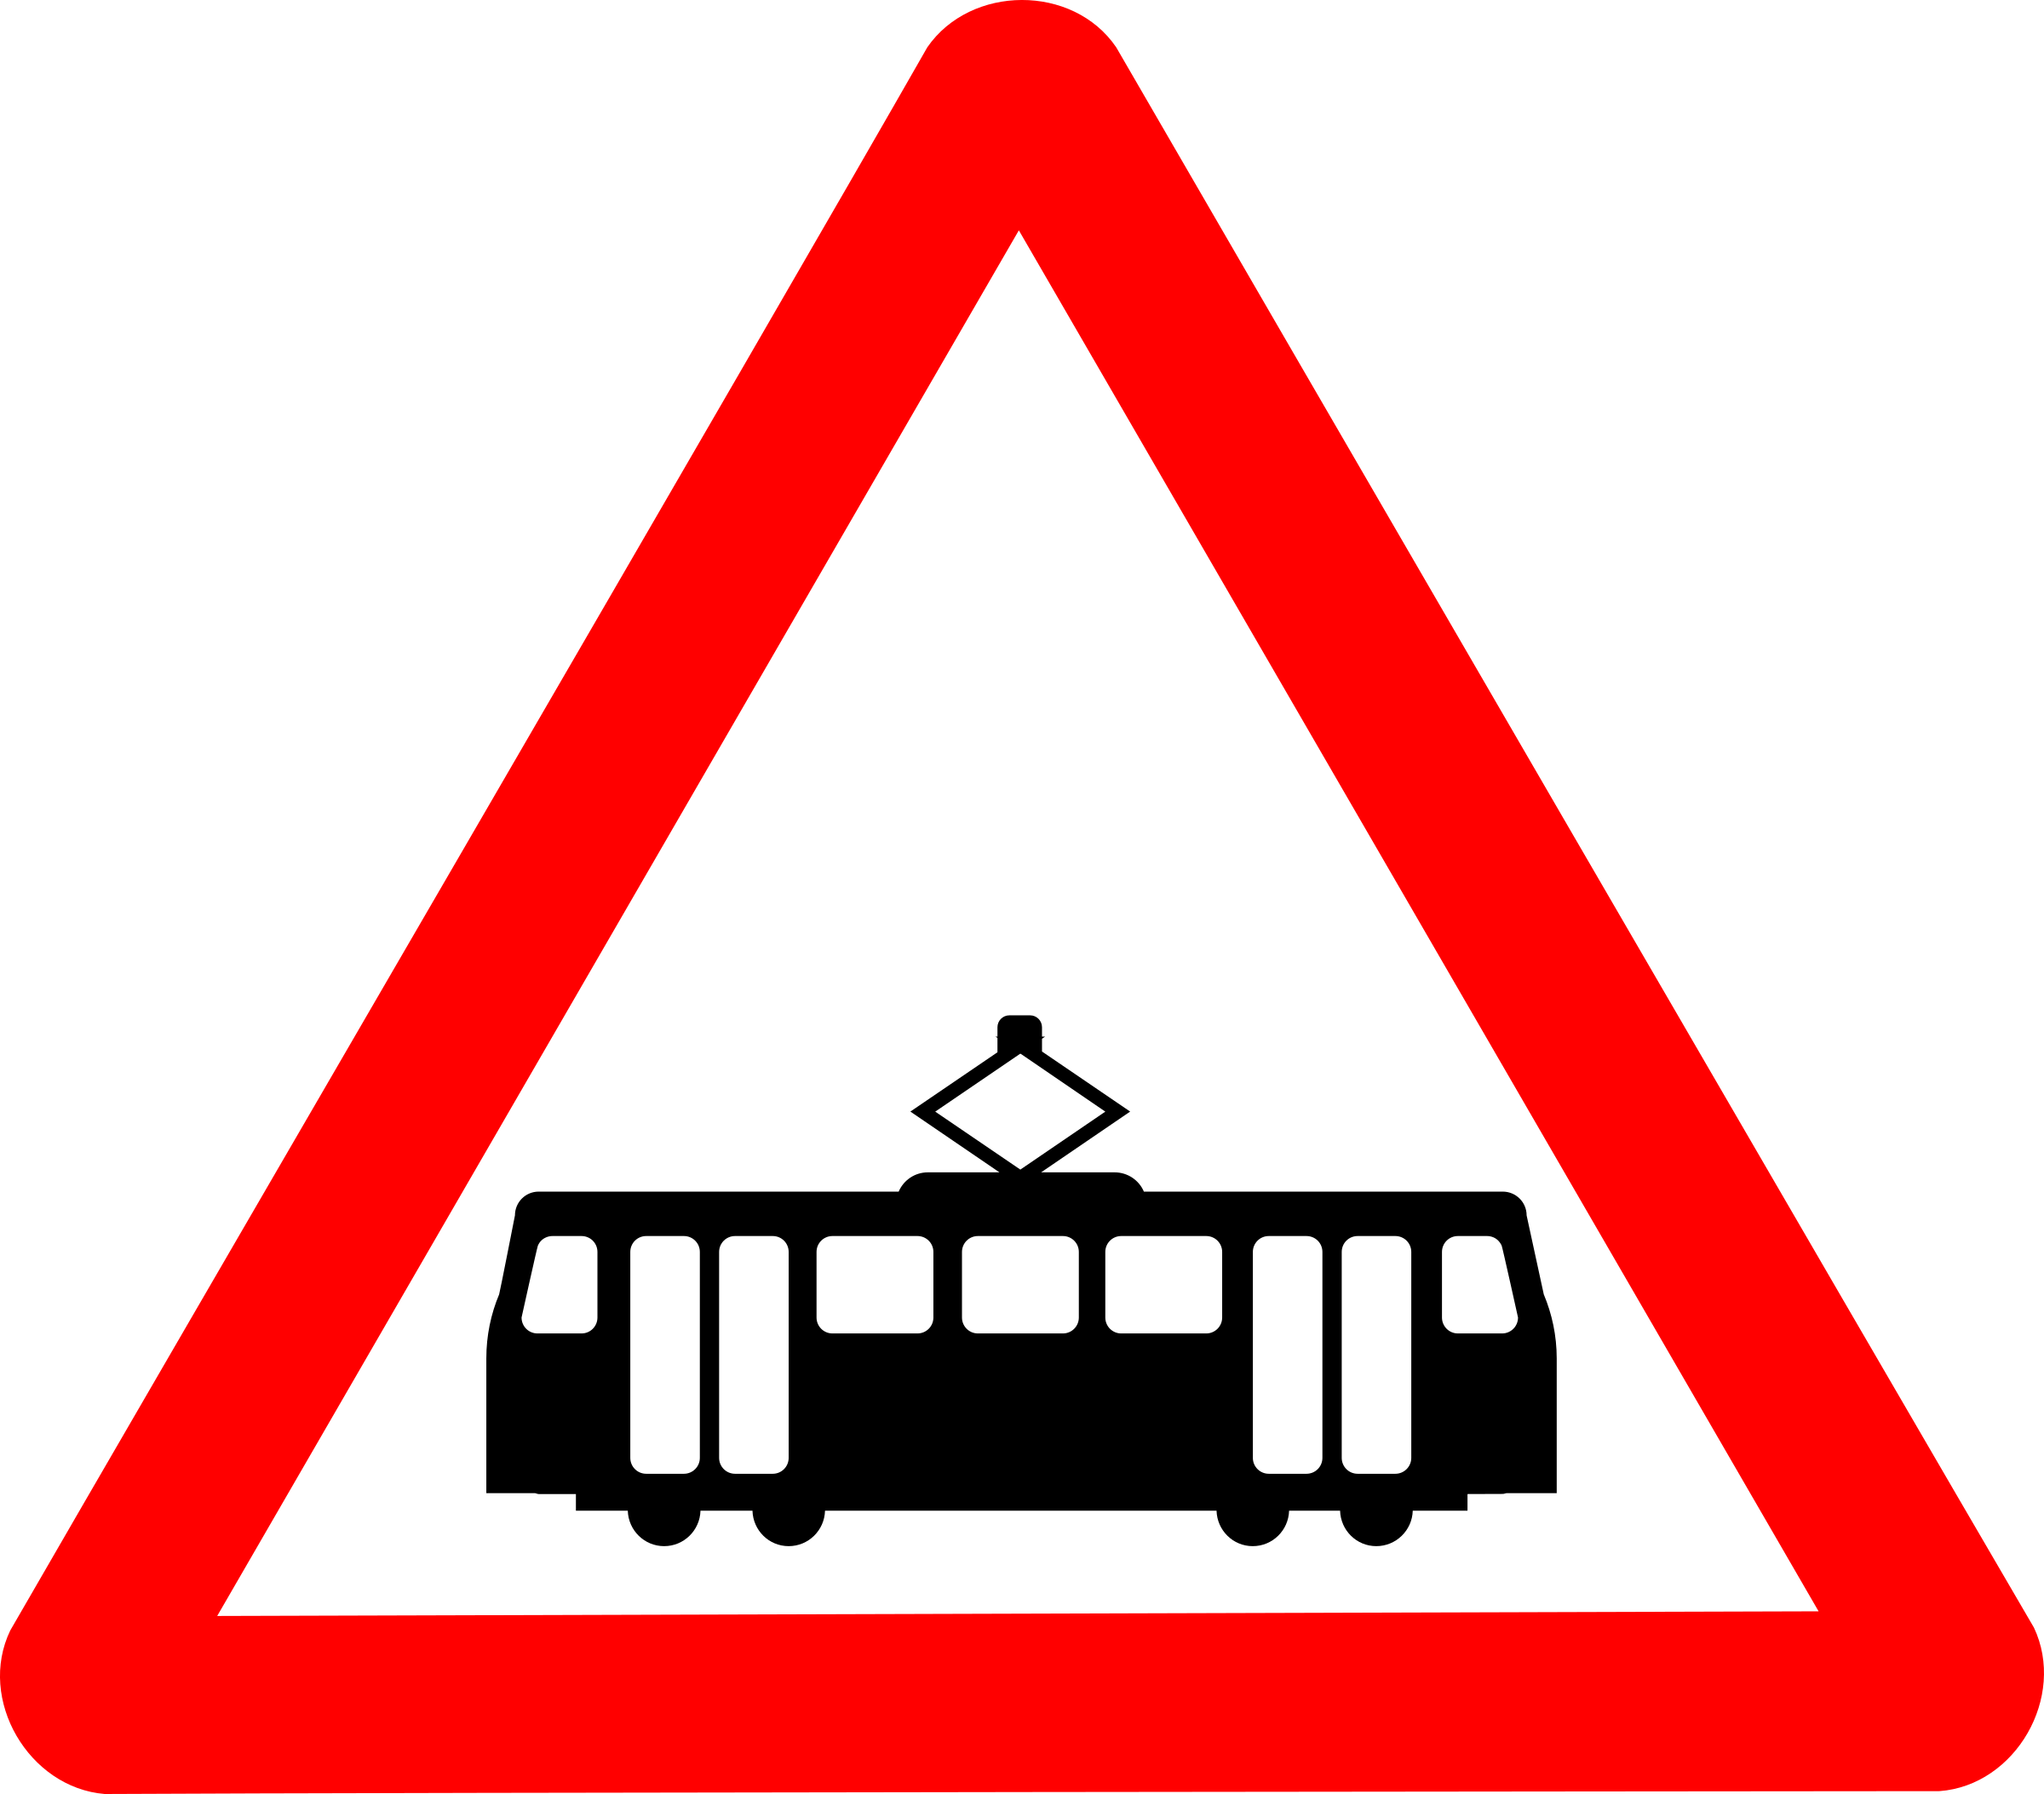 Roadsign tram by Simarilius